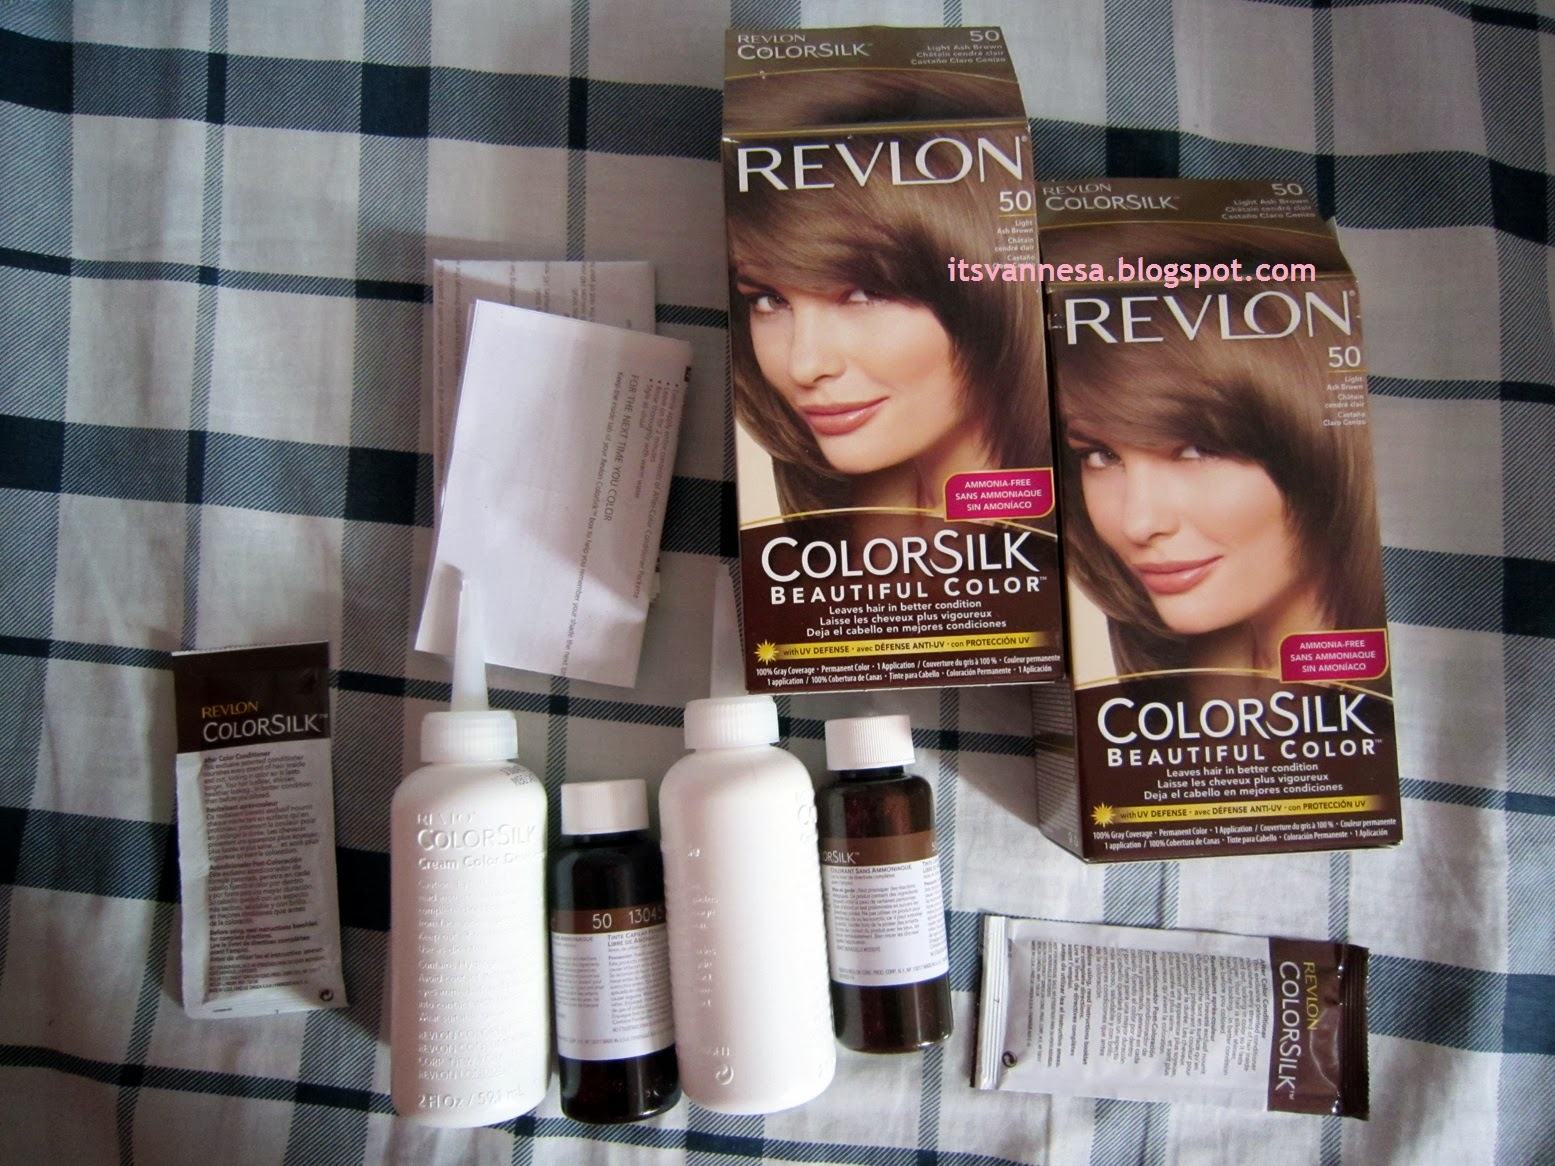 Colorsilk beautiful color 55 light reddish brown by revlon hair color - 175 Medium Blonde And Revlon Colorsilk Beautiful Color No 50 Light Ash Brown The Term Blonde Scared Me So I Chose The Second One I Have A Very Long Hair